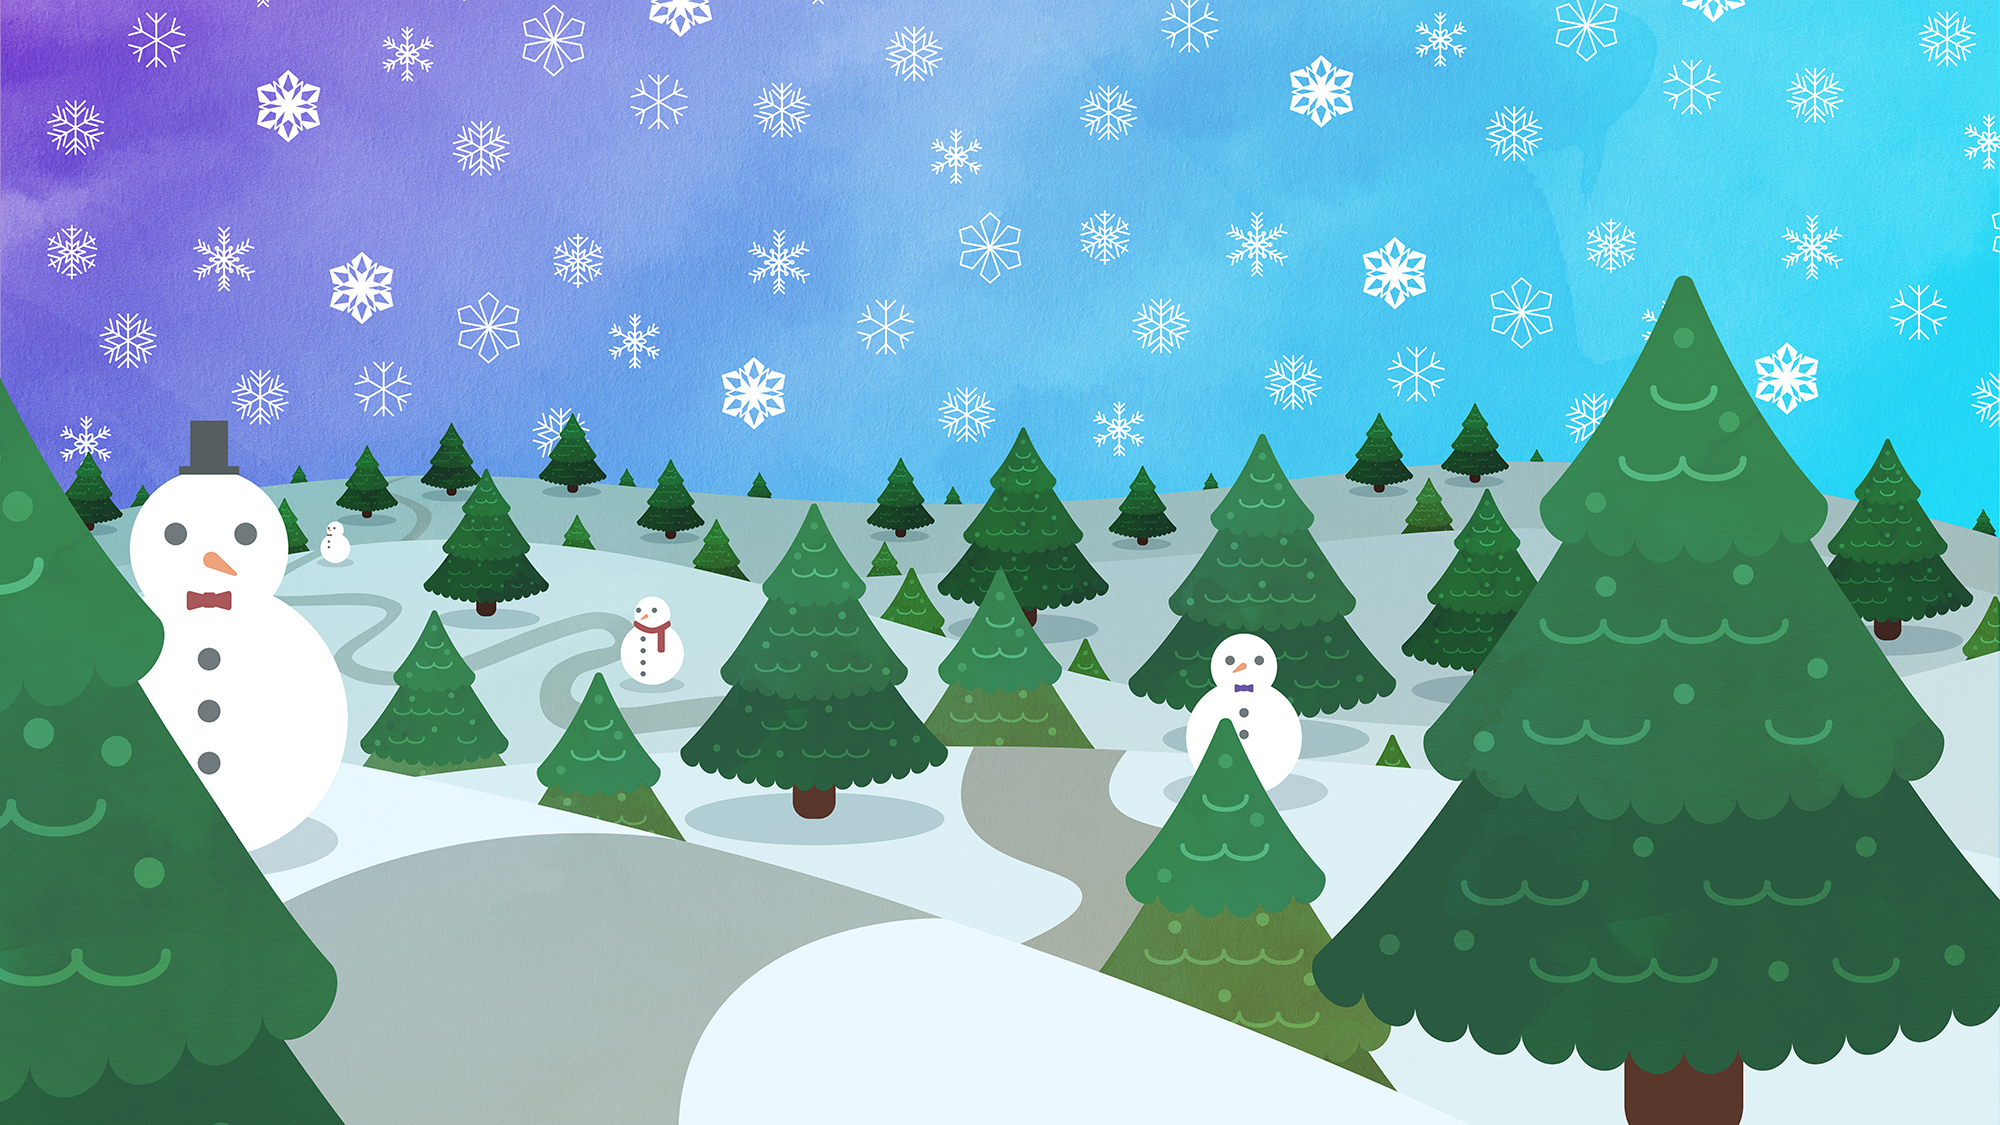 Wintery landscape with trees and snowmen